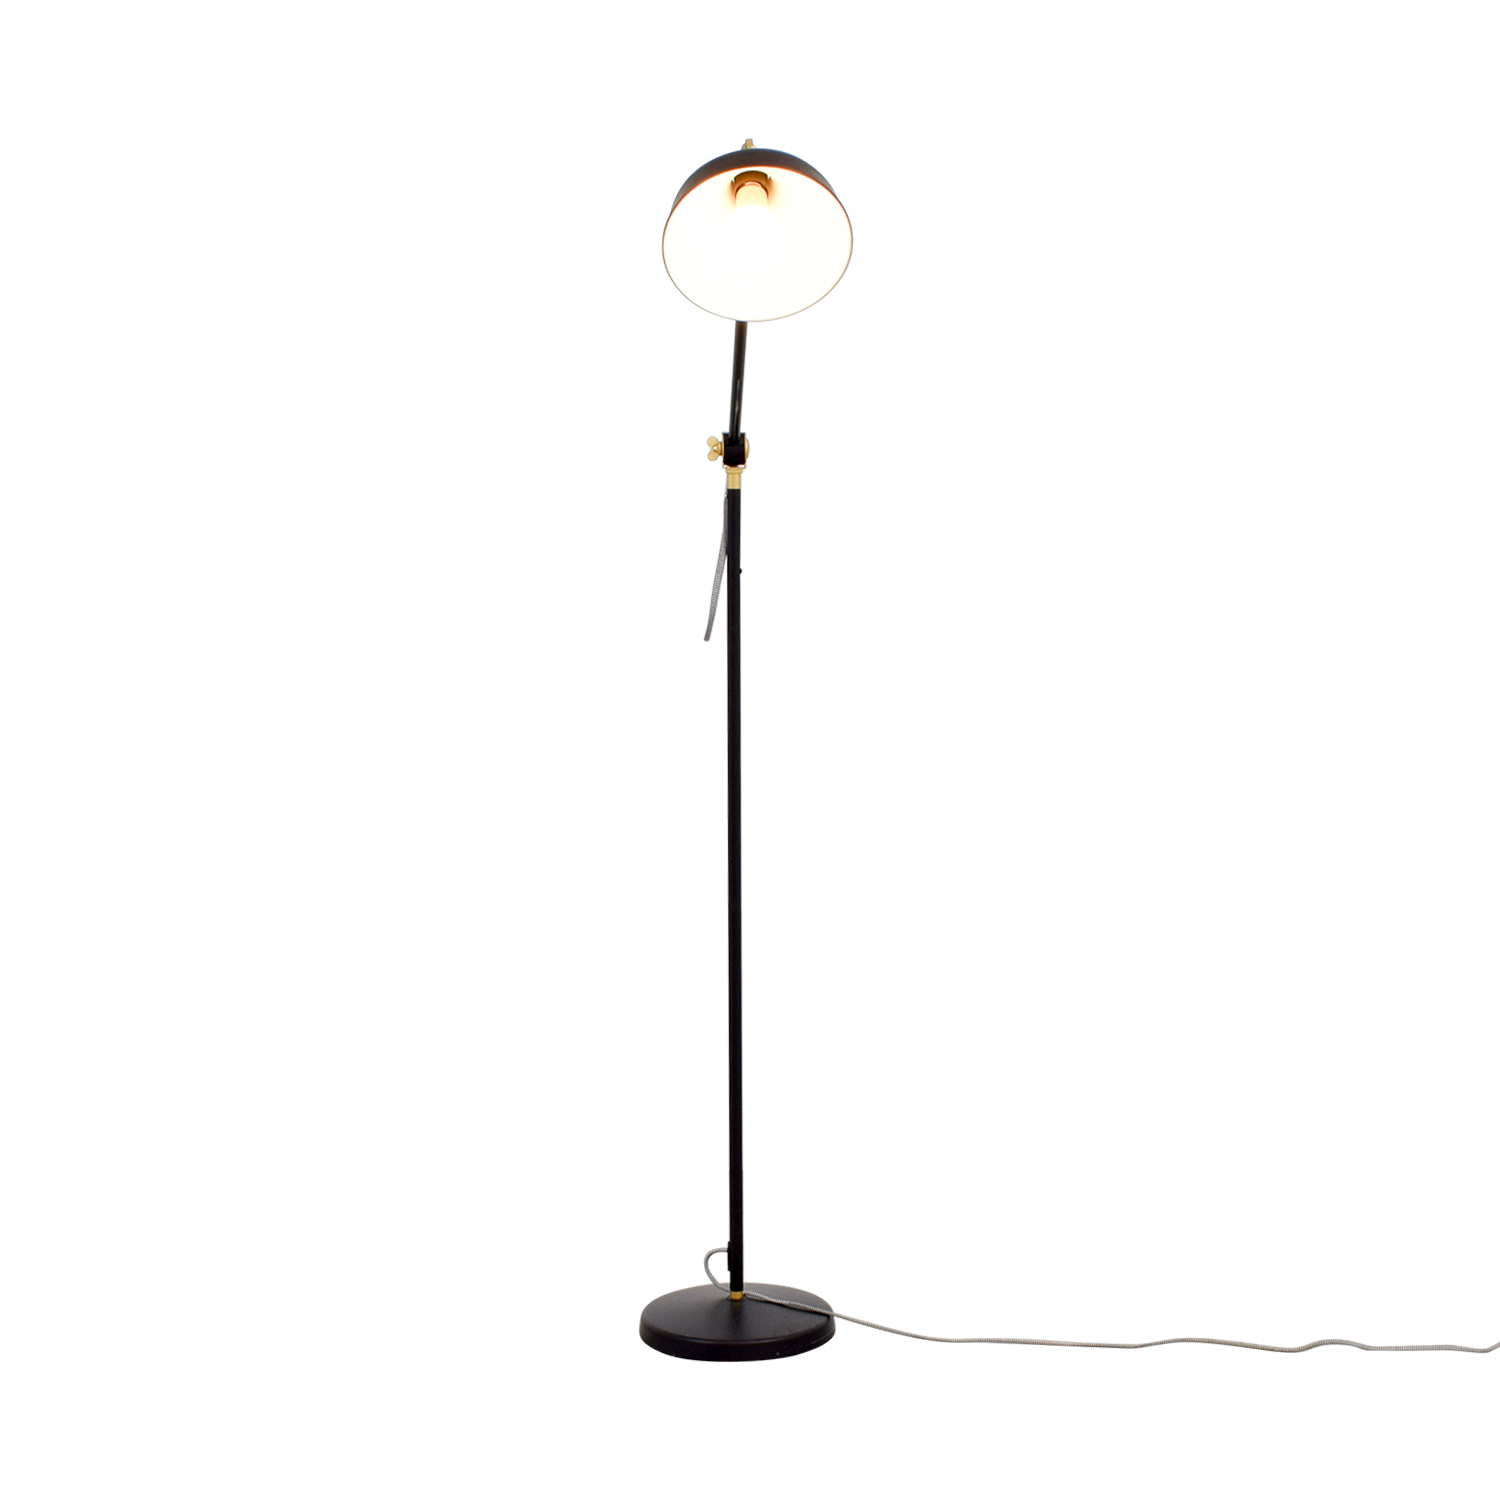 IKEA IKEA Tilting Standing Lamp dimensions